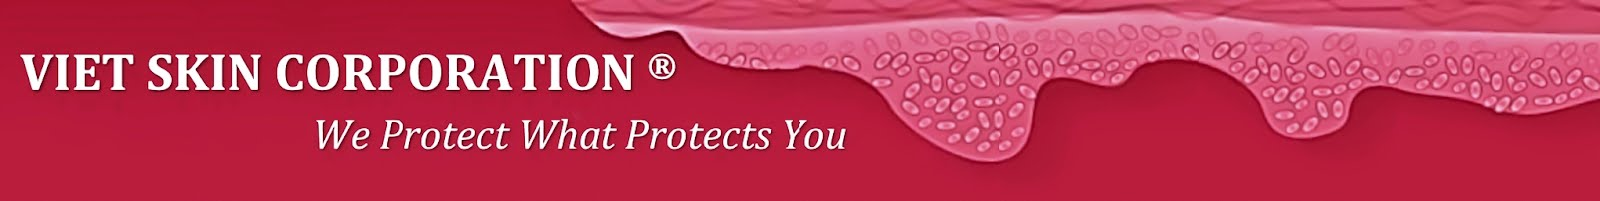 Viet Skin Corporation - We Protect What Protects You